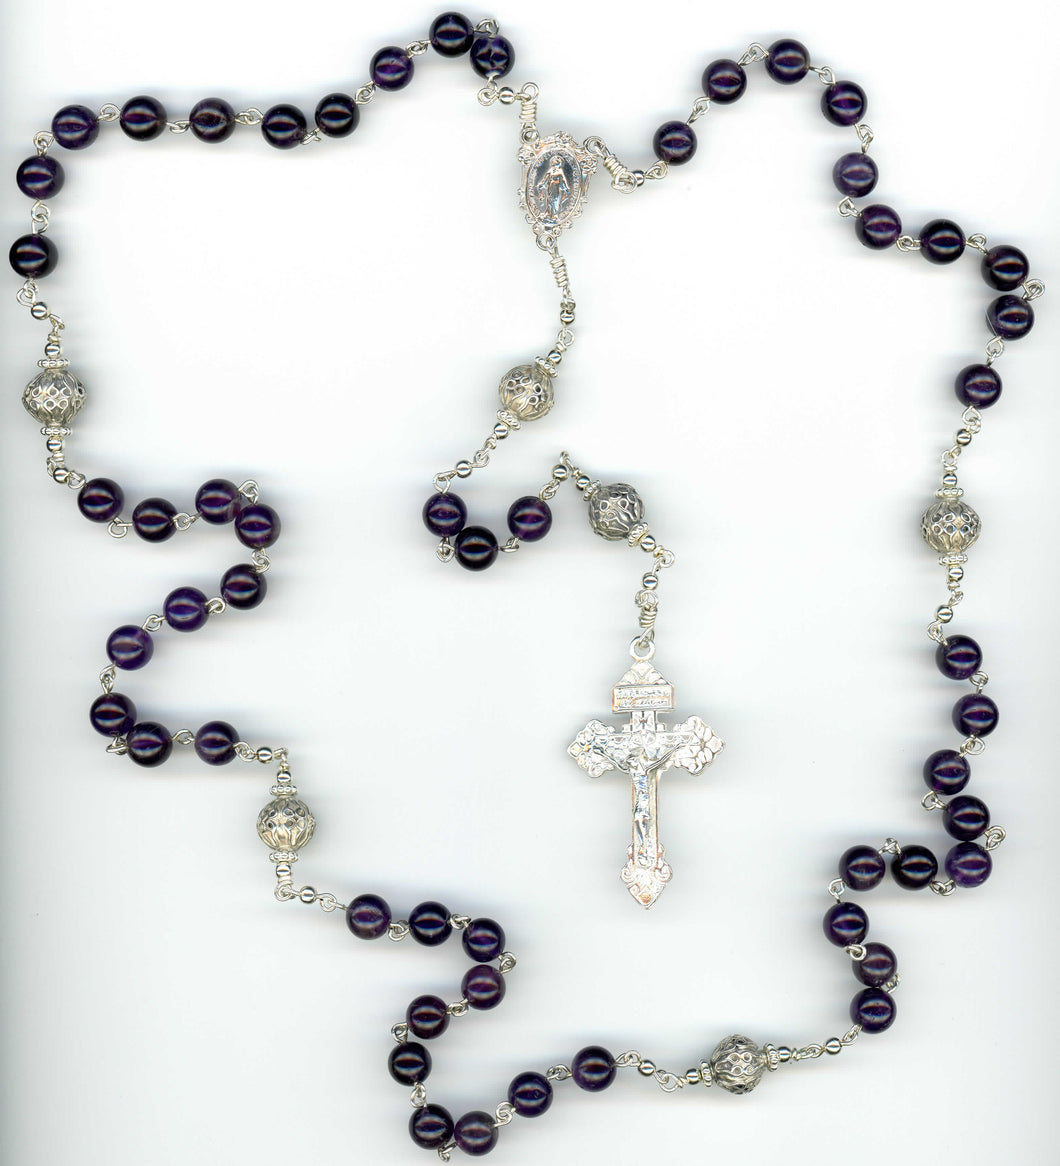 Amethyst Rosary with 8mm beads in Sterling Silver